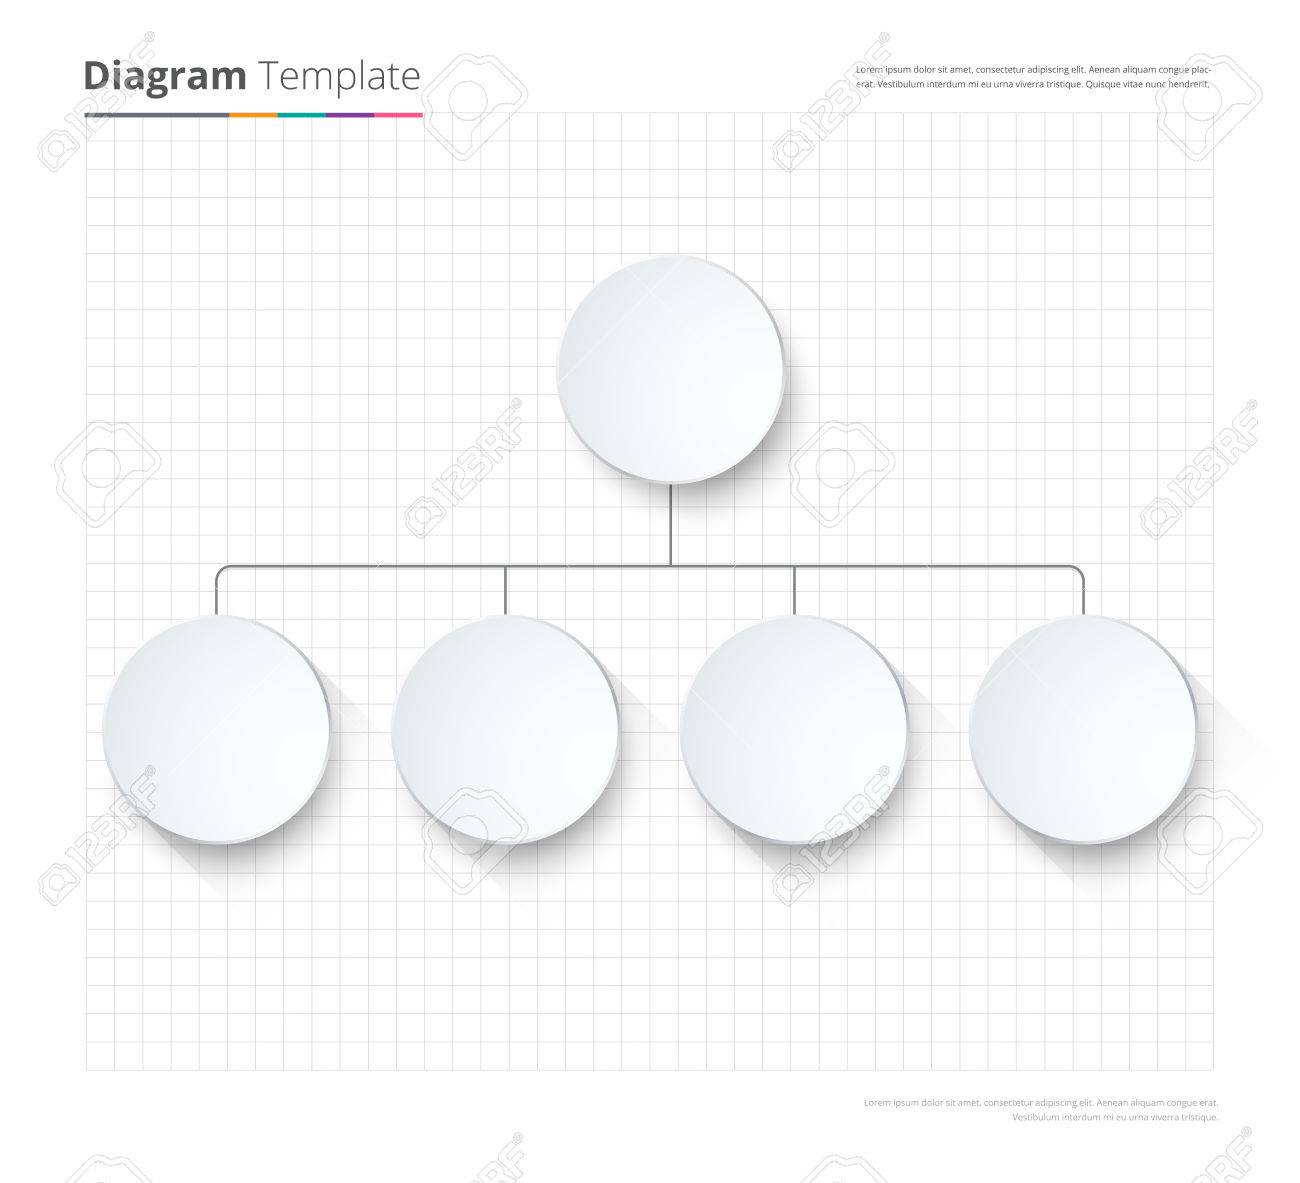 picture about Blank Chart Template called Diagram Template, Enterprise chart template. circulation template,..